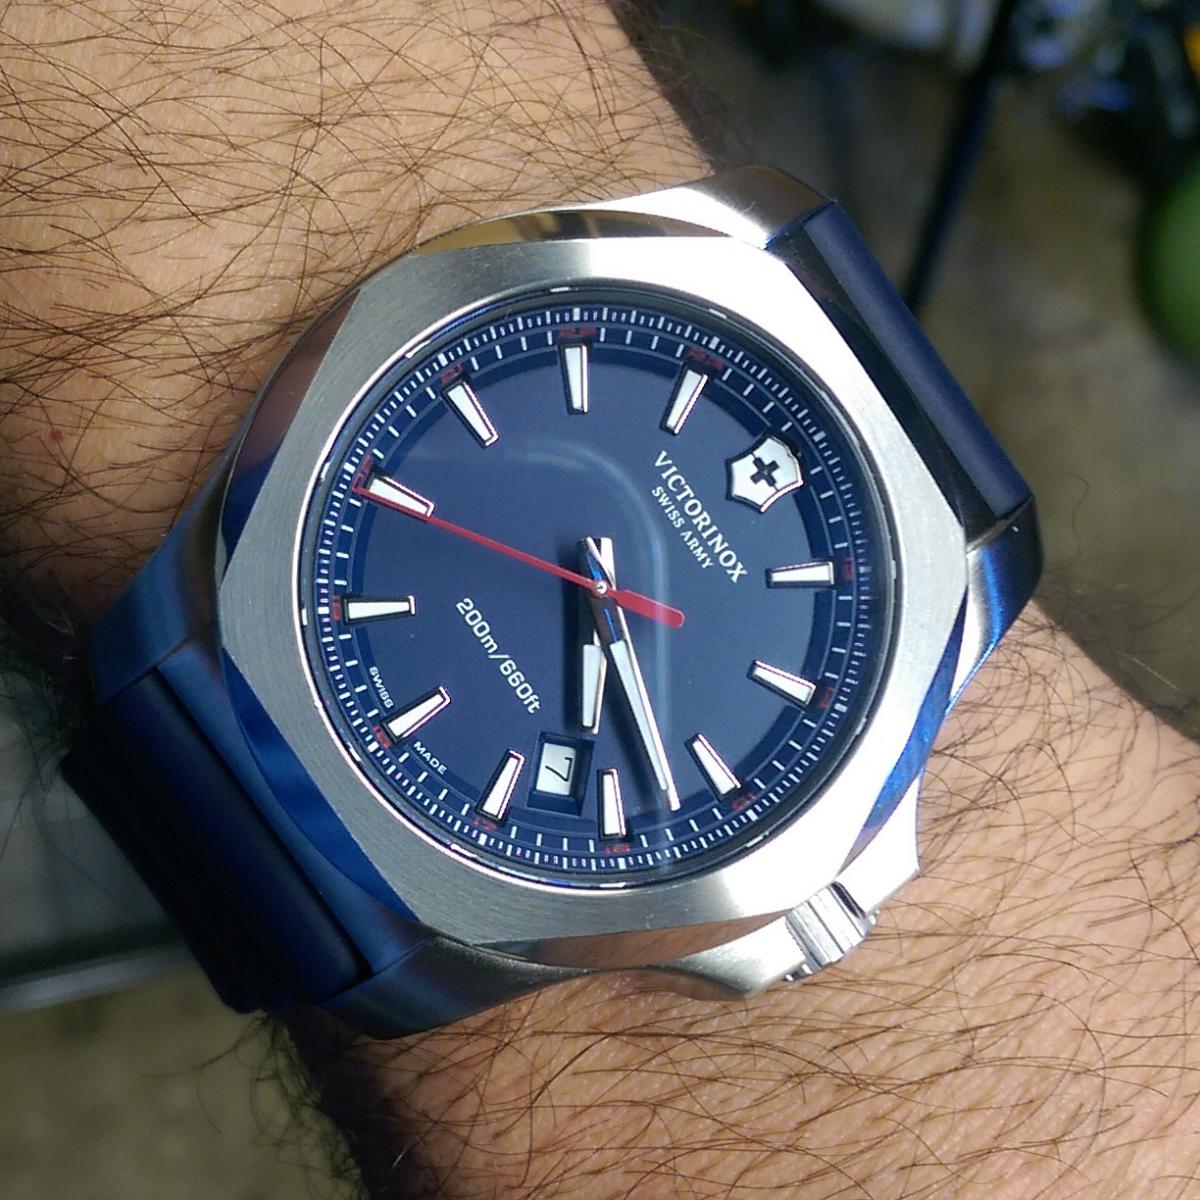 What do you think of the Victorinox I.N.O.X?-uploadfromtaptalk1448010356102.jpg